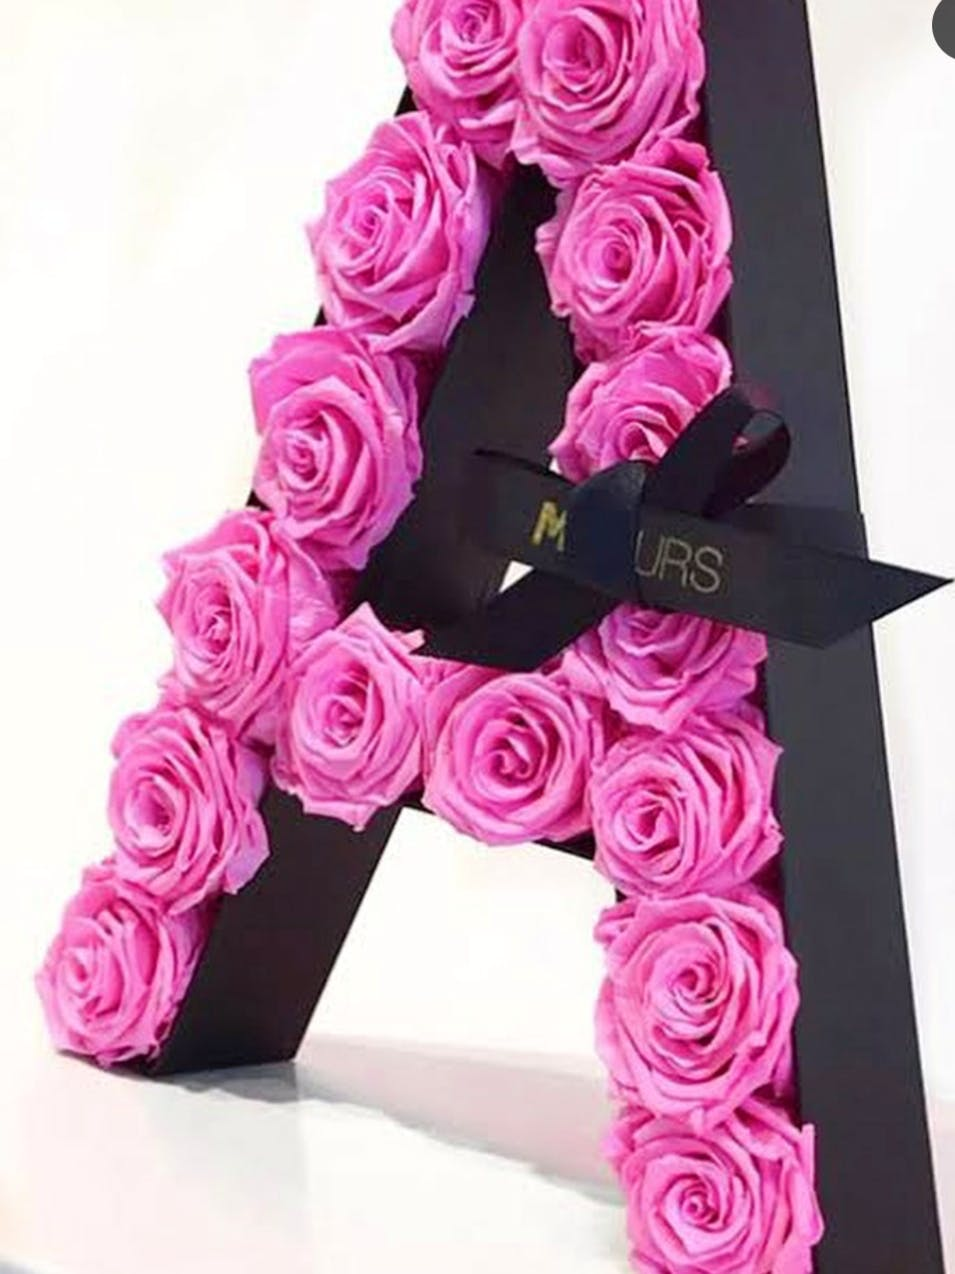 Pink,Rose,Flower,Rose family,Garden roses,Magenta,Plant,Rose order,Cut flowers,Material property